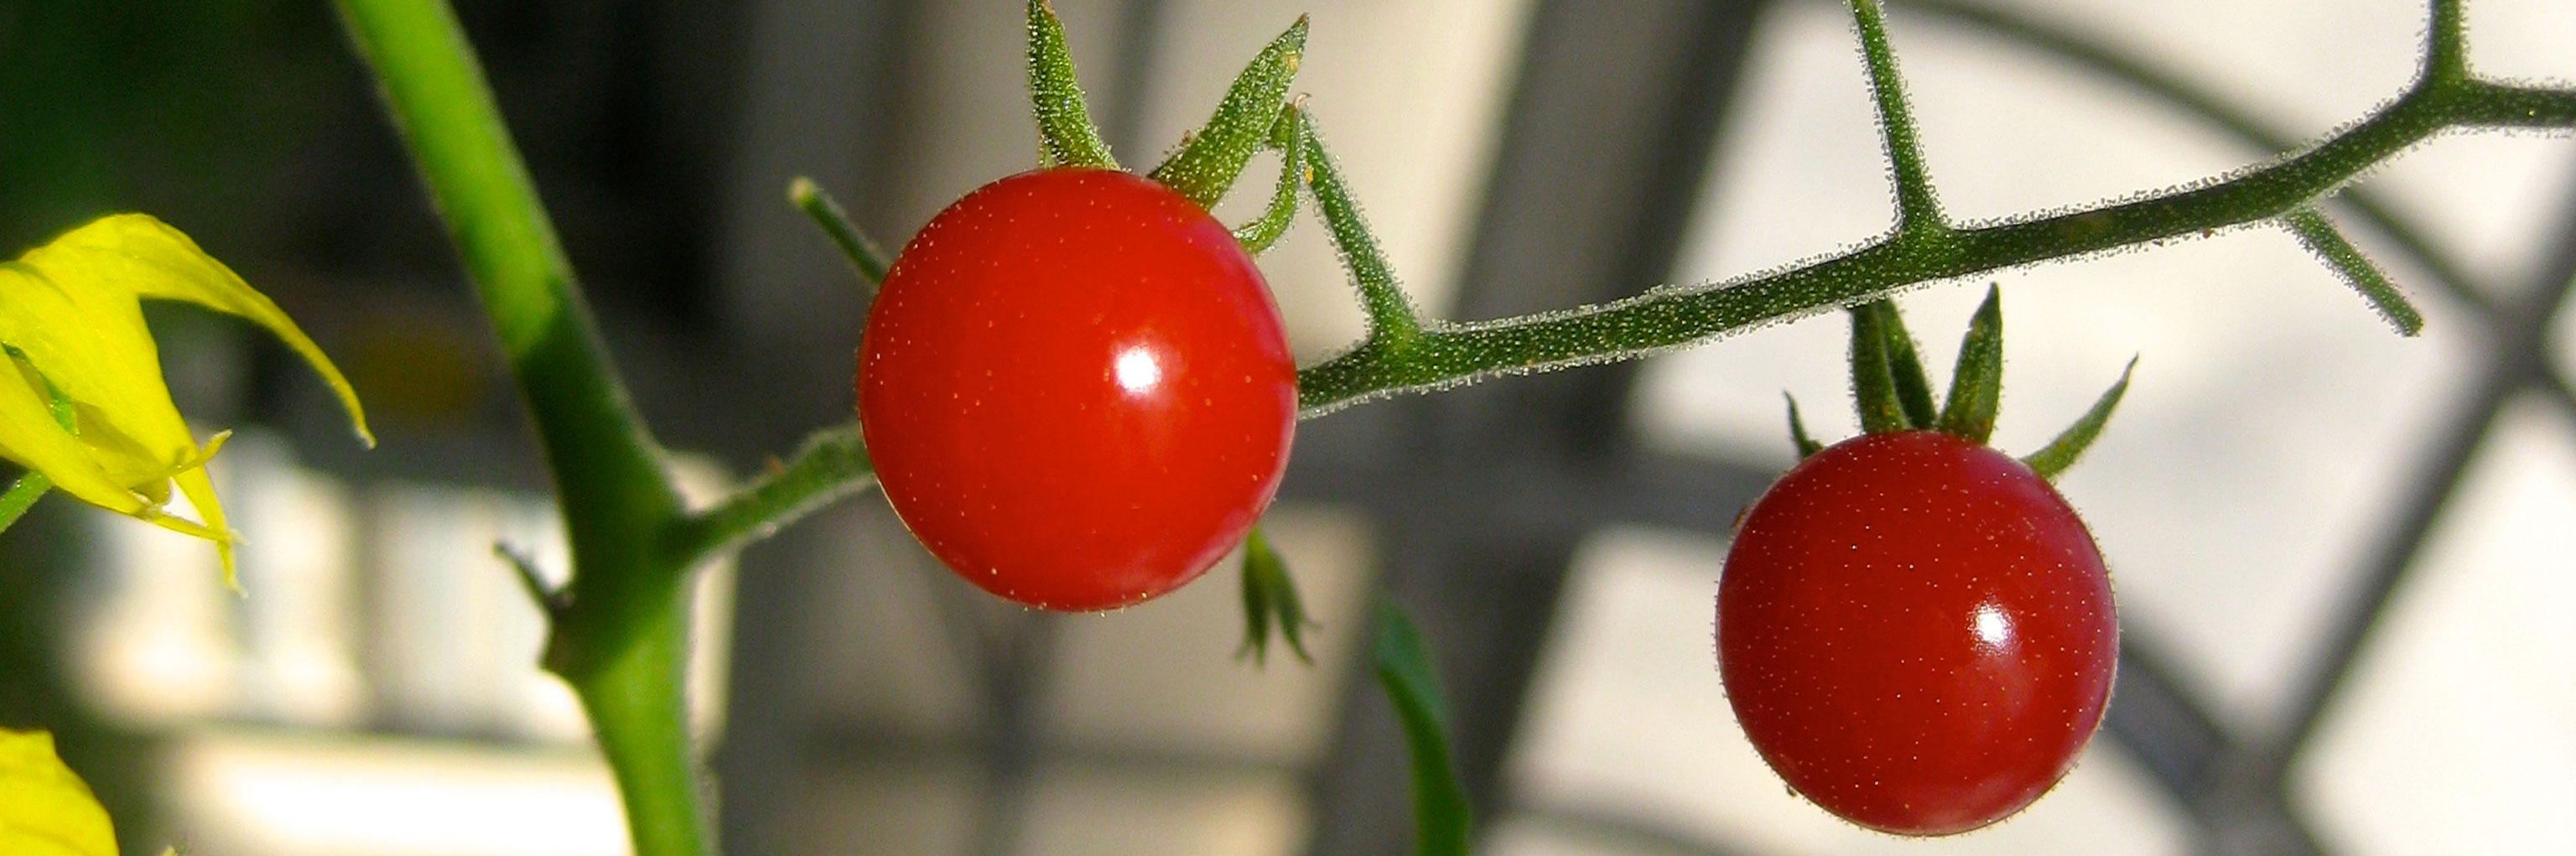 Close up of a cherry tomato